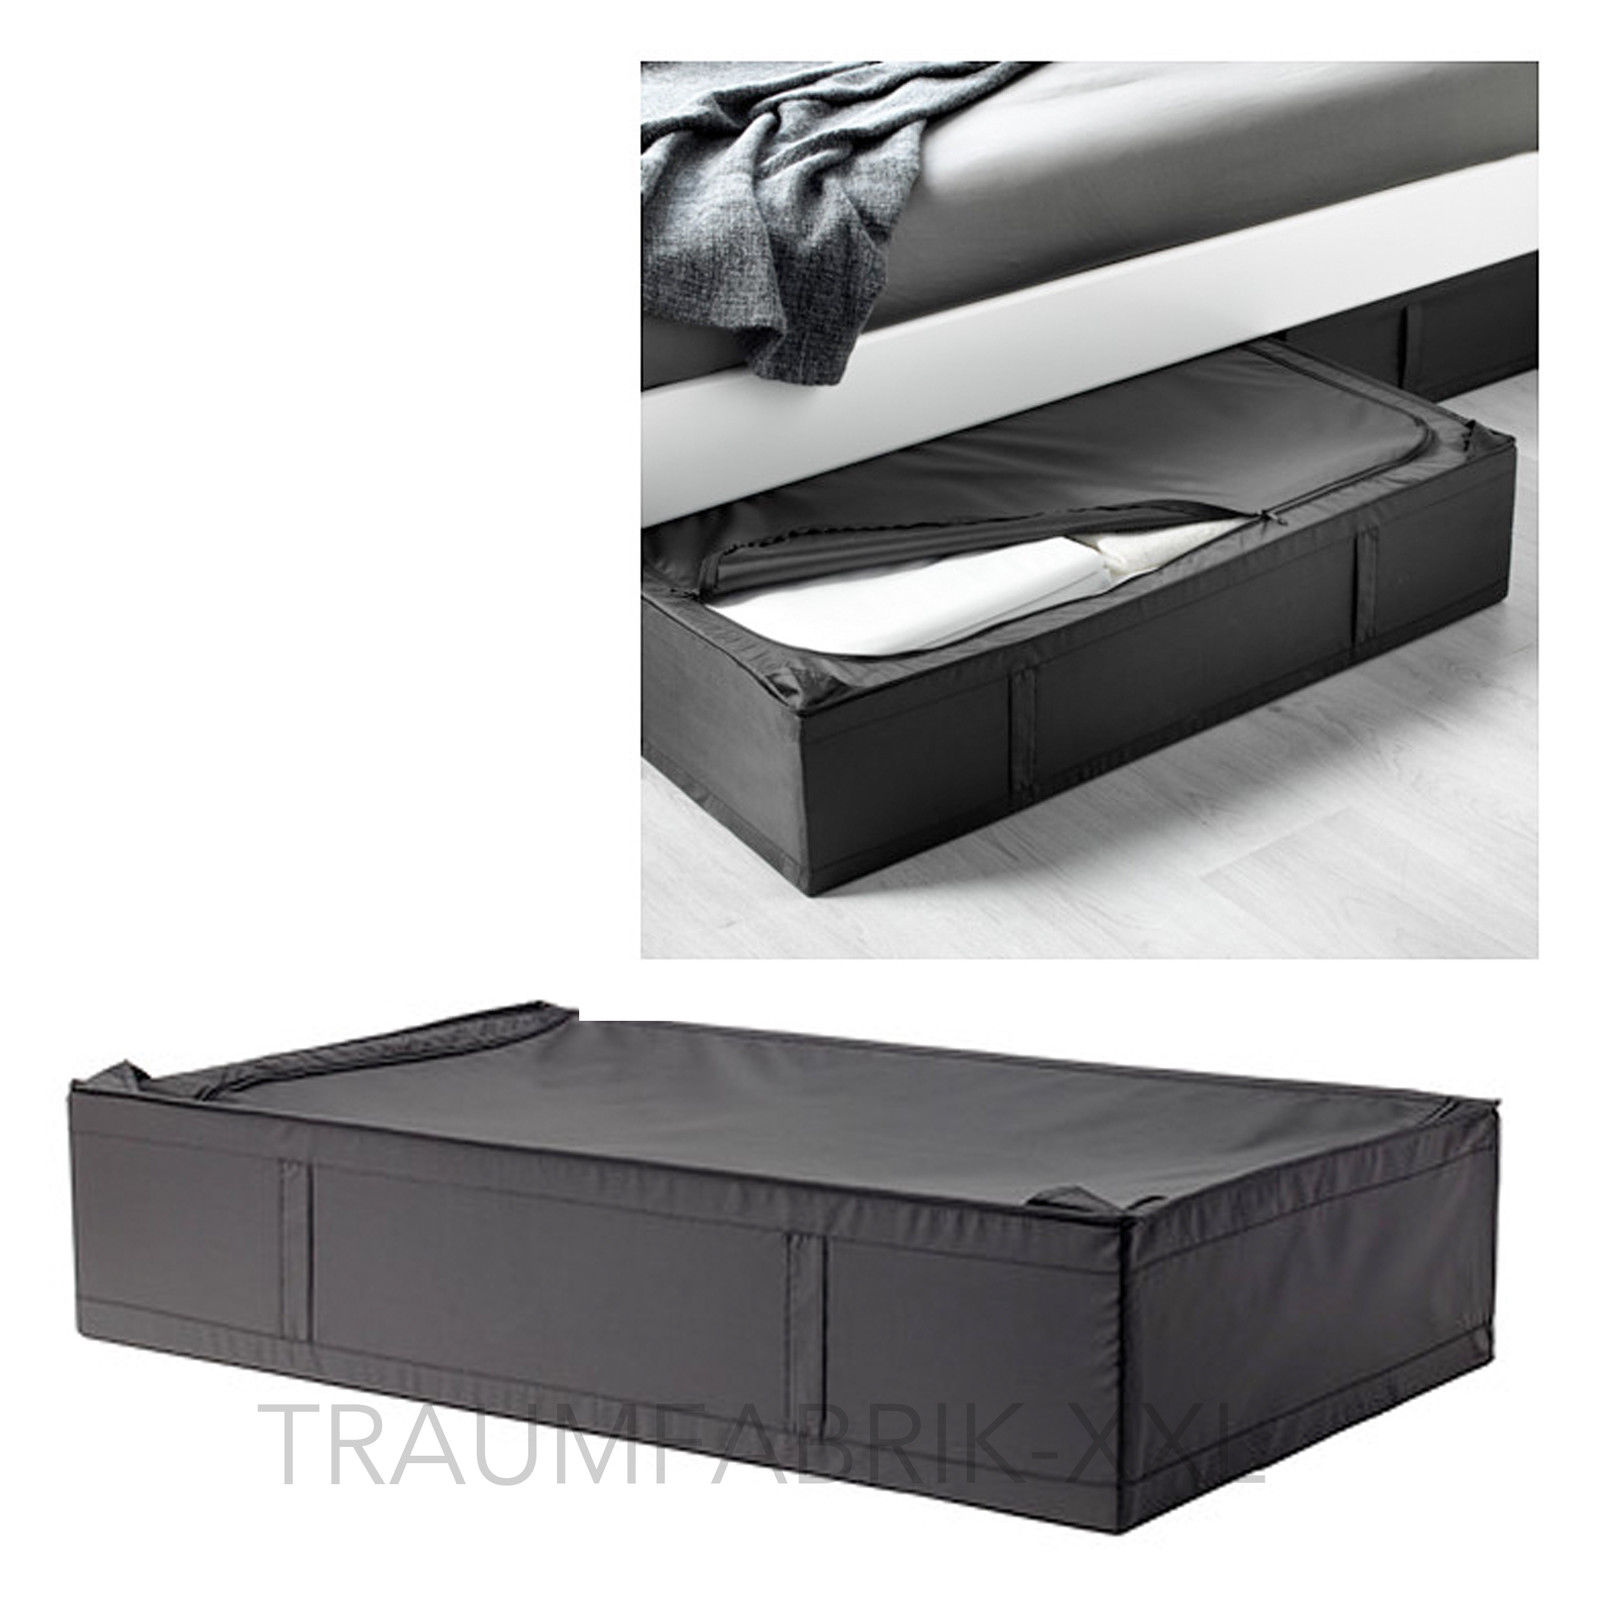 ikea skubb tasche organizer aufbewahrungsbox unterbett. Black Bedroom Furniture Sets. Home Design Ideas